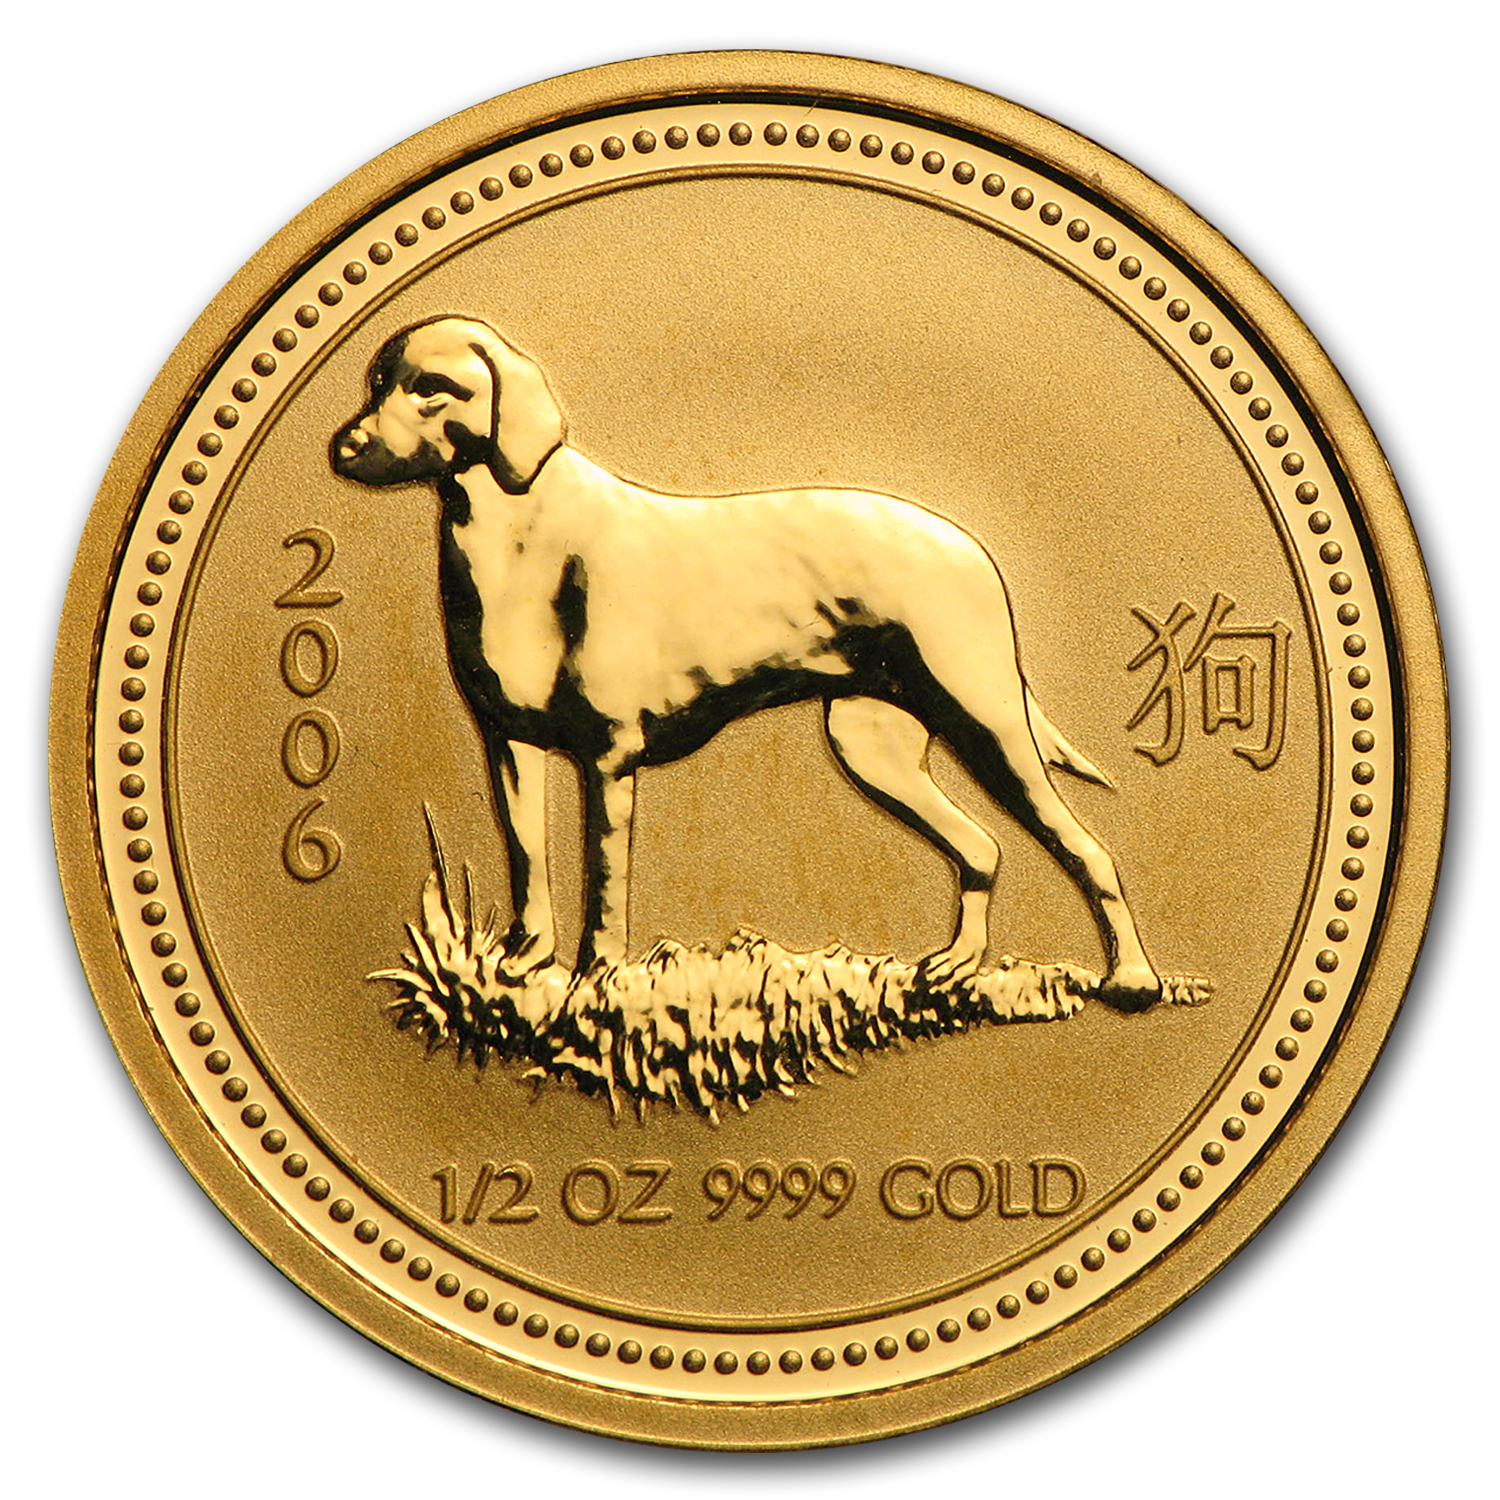 2006 1/2 oz Gold Year of the Dog Lunar Coin (Series I)